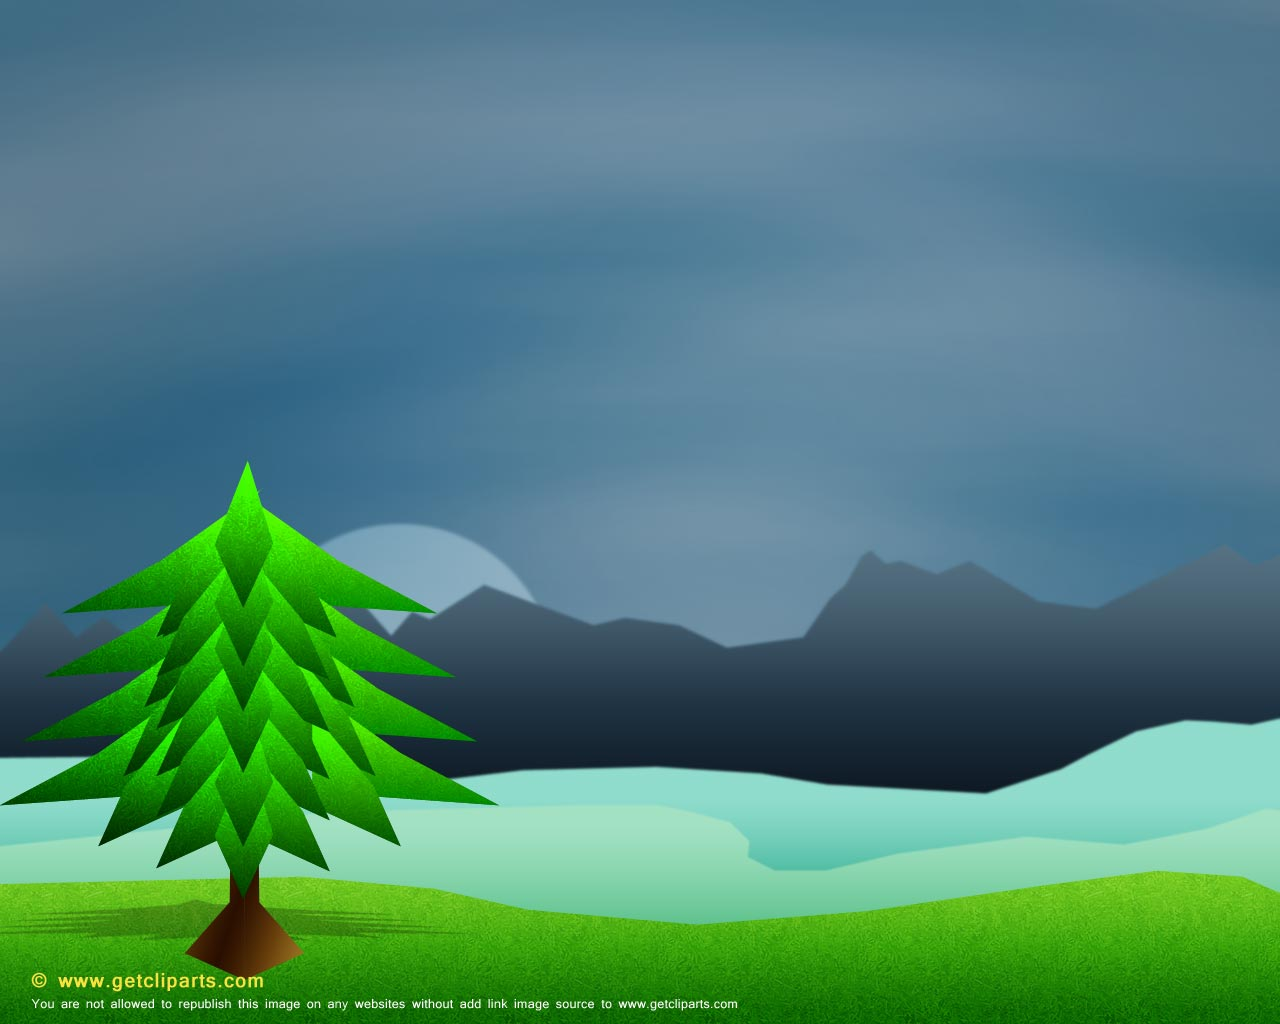 2012 christmas powerpoint background getcliparts visual this xmas powerpoint background created alramifo Image collections